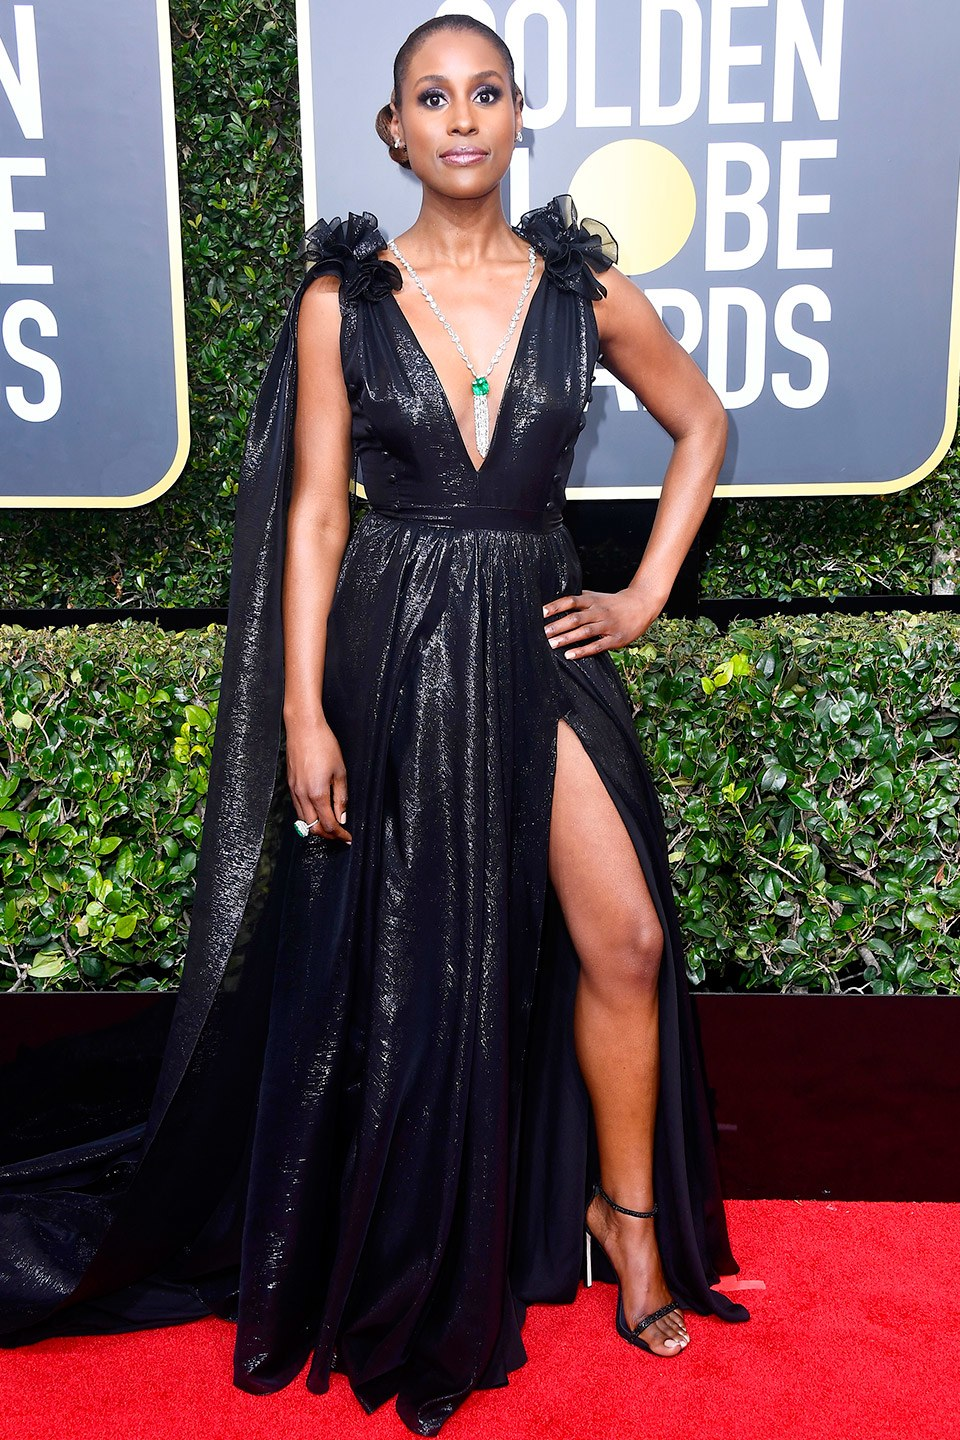 Best-Dressed-Golden-Globes-Issa-Rae